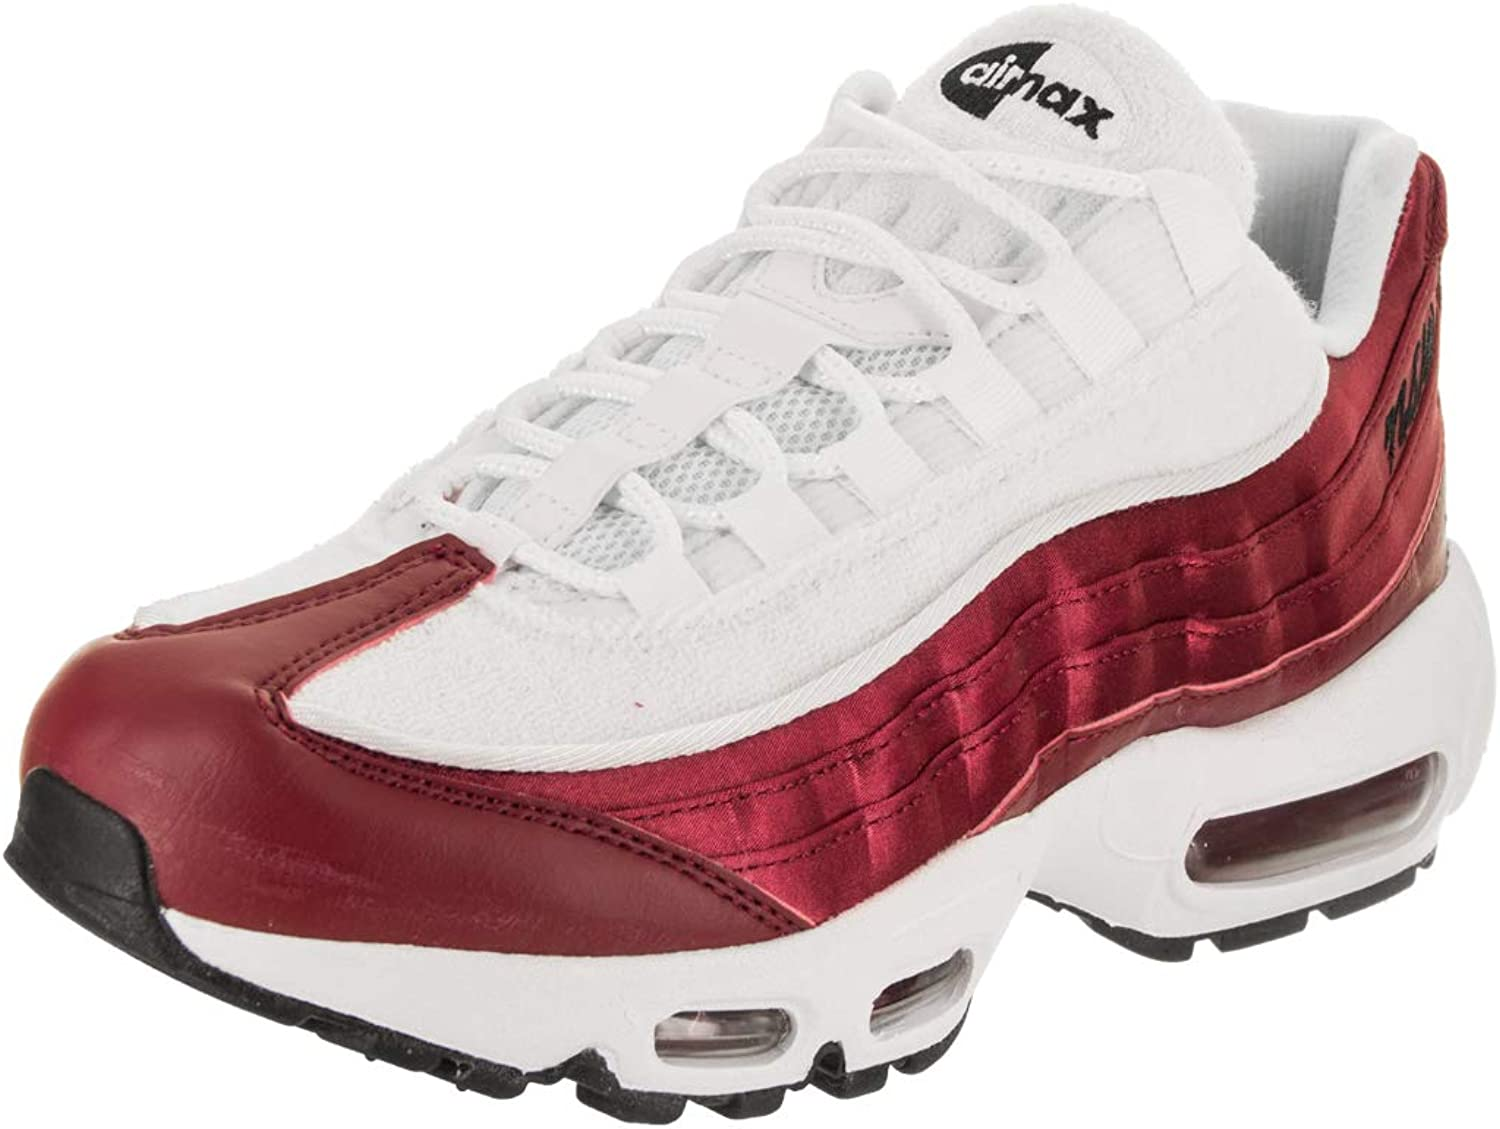 Nike Women's Air Max 95 LX Casual shoes